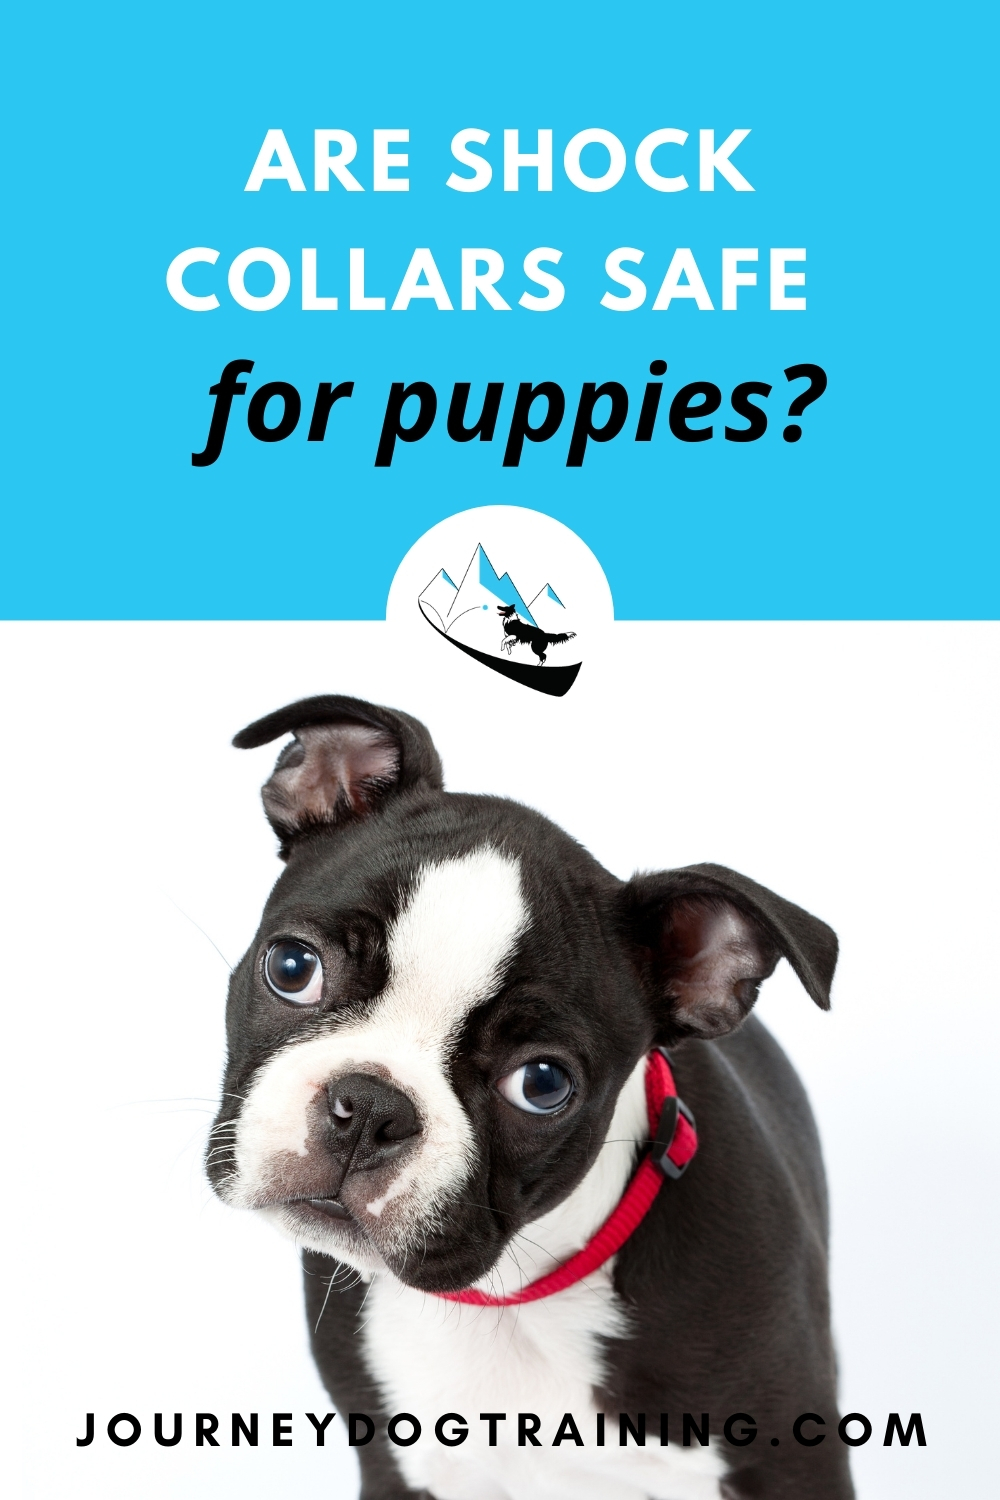 are shock collars safe for puppies | journeydogtraining.com